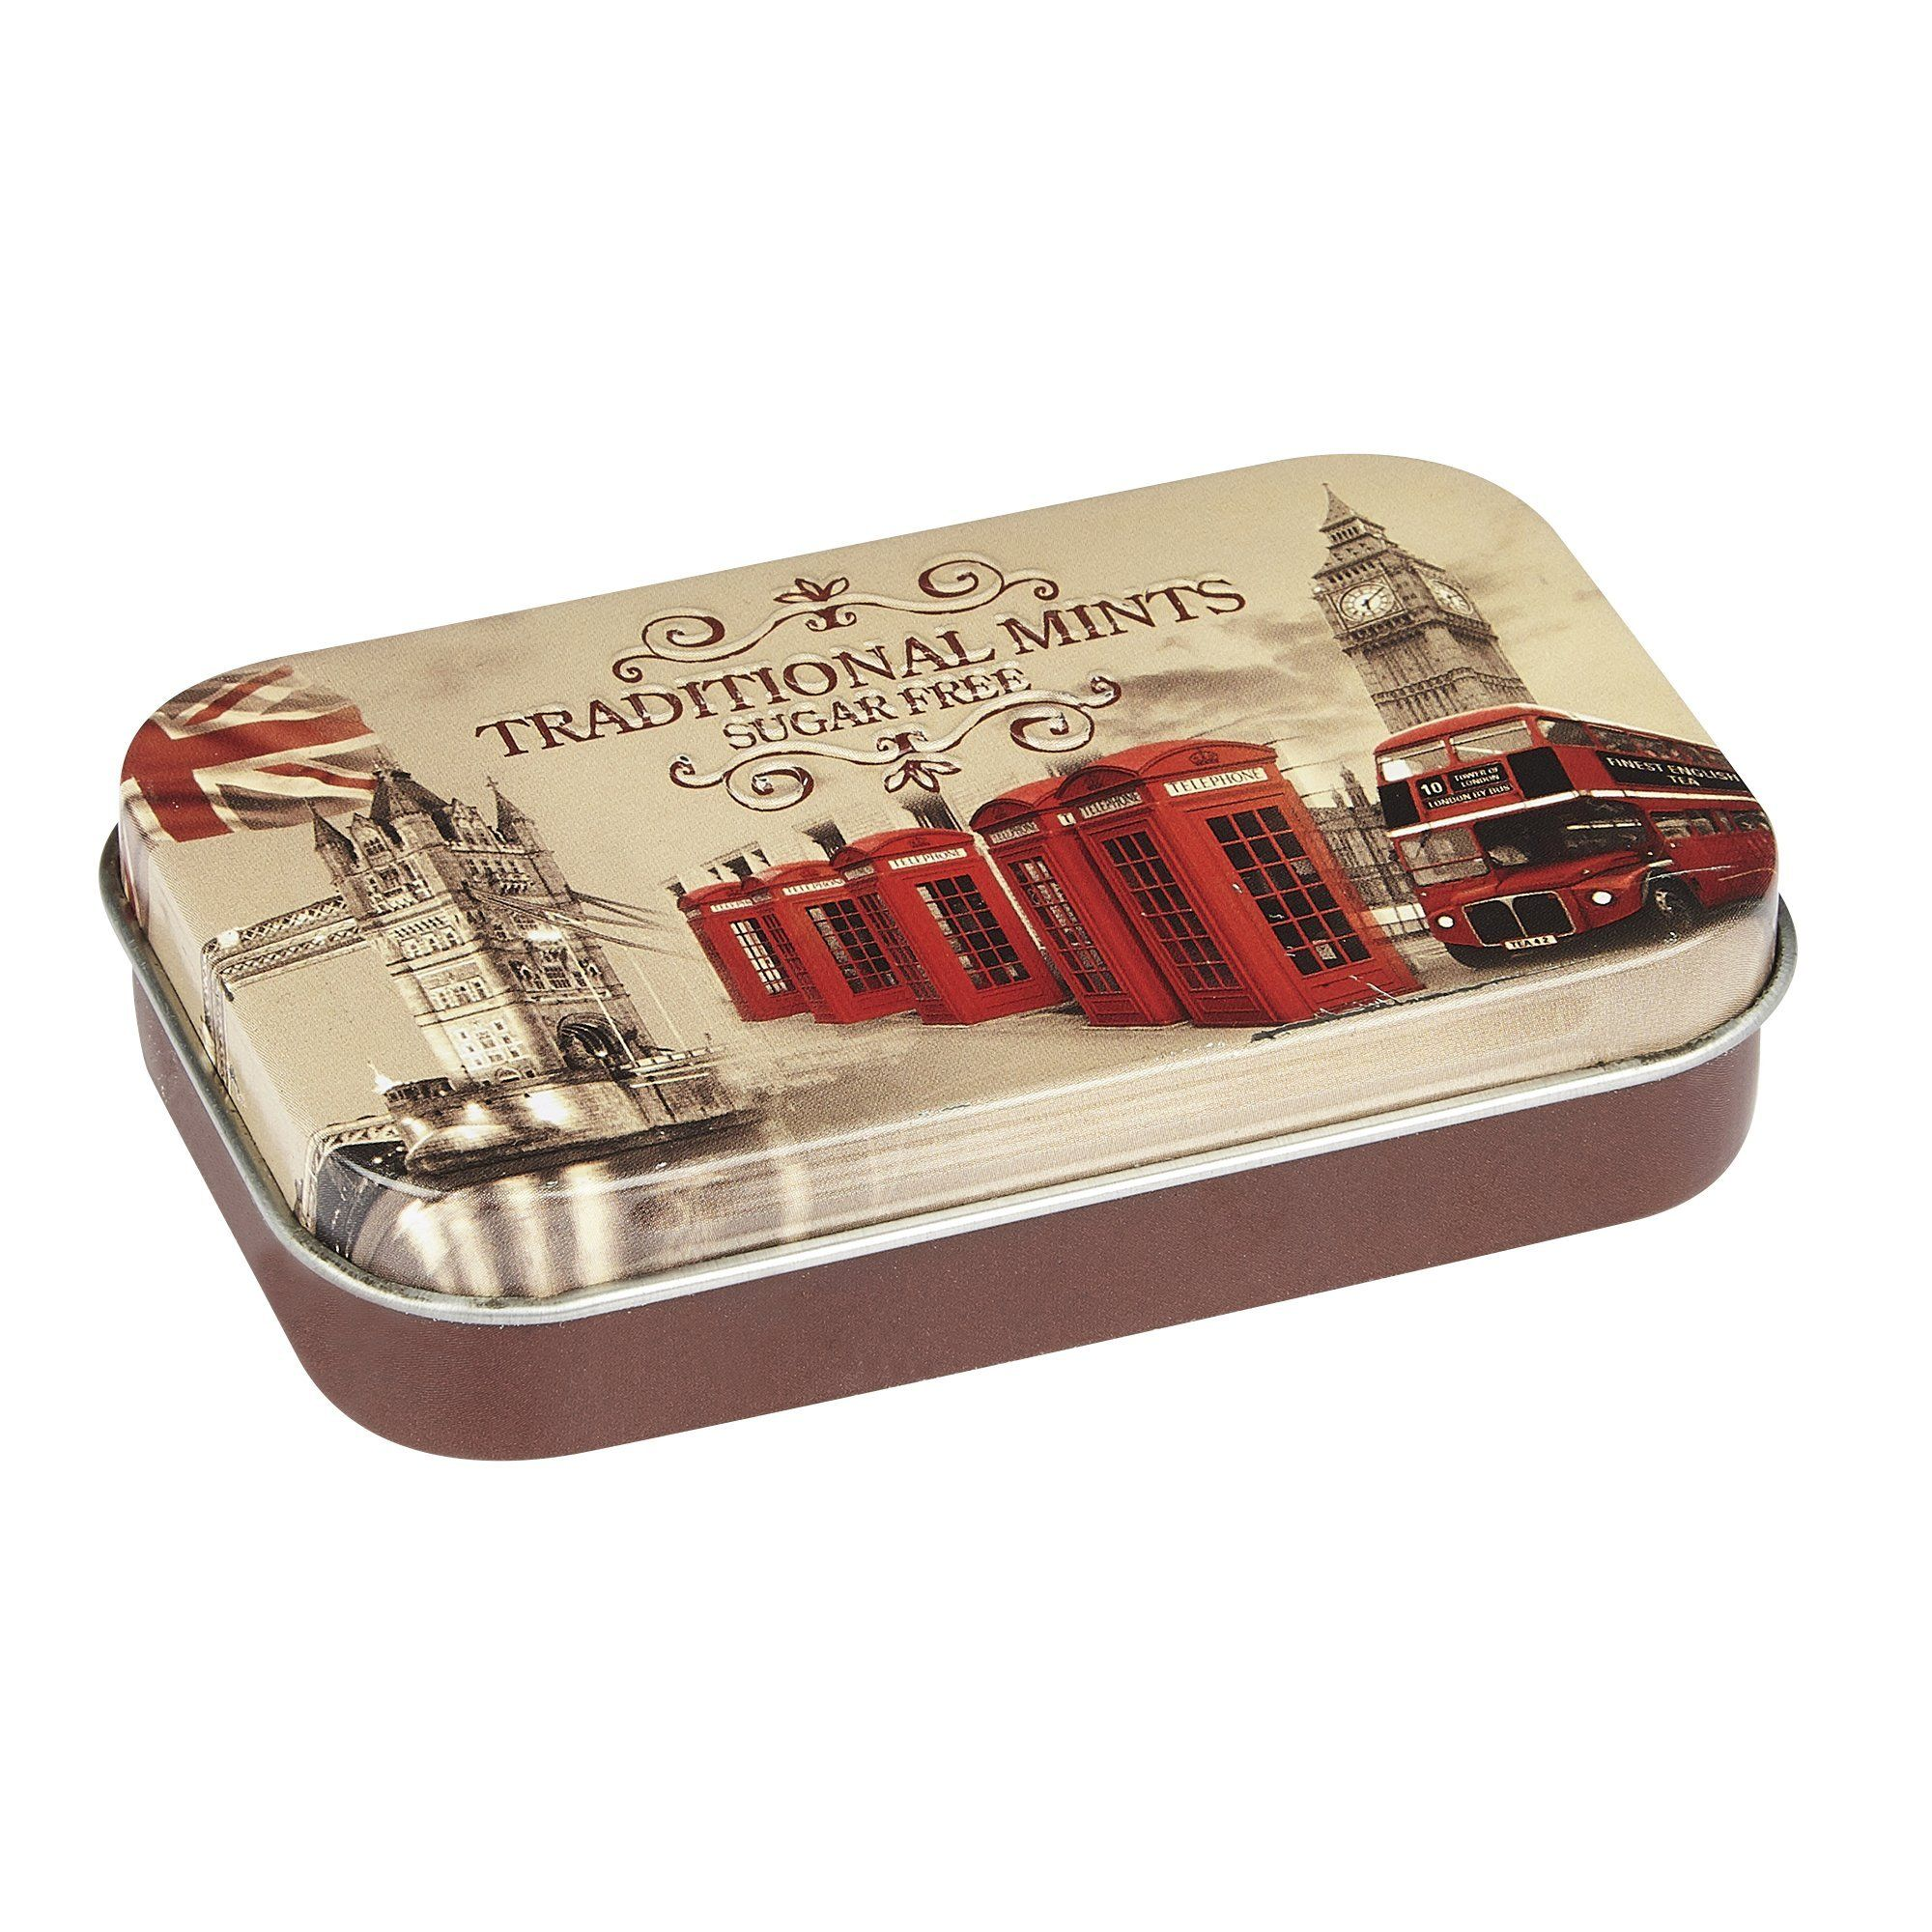 Vintage England Sugar Free Mints Pocket Tin 35g Mints New English Teas